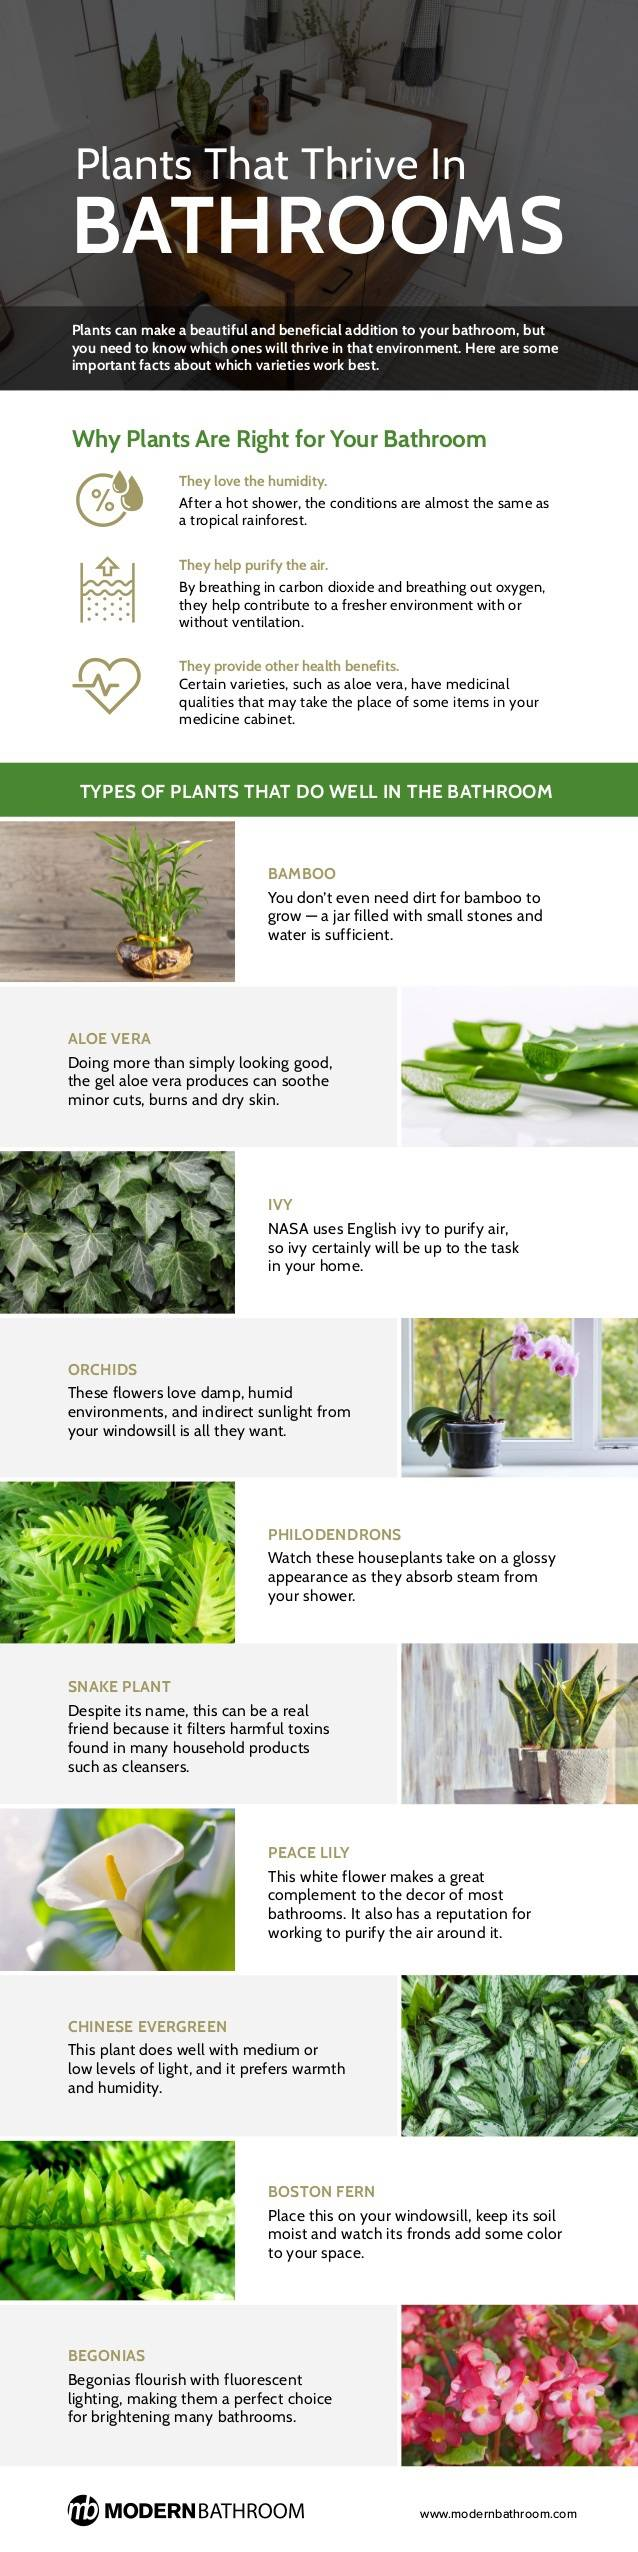 plants-that-thrive-in-bathrooms